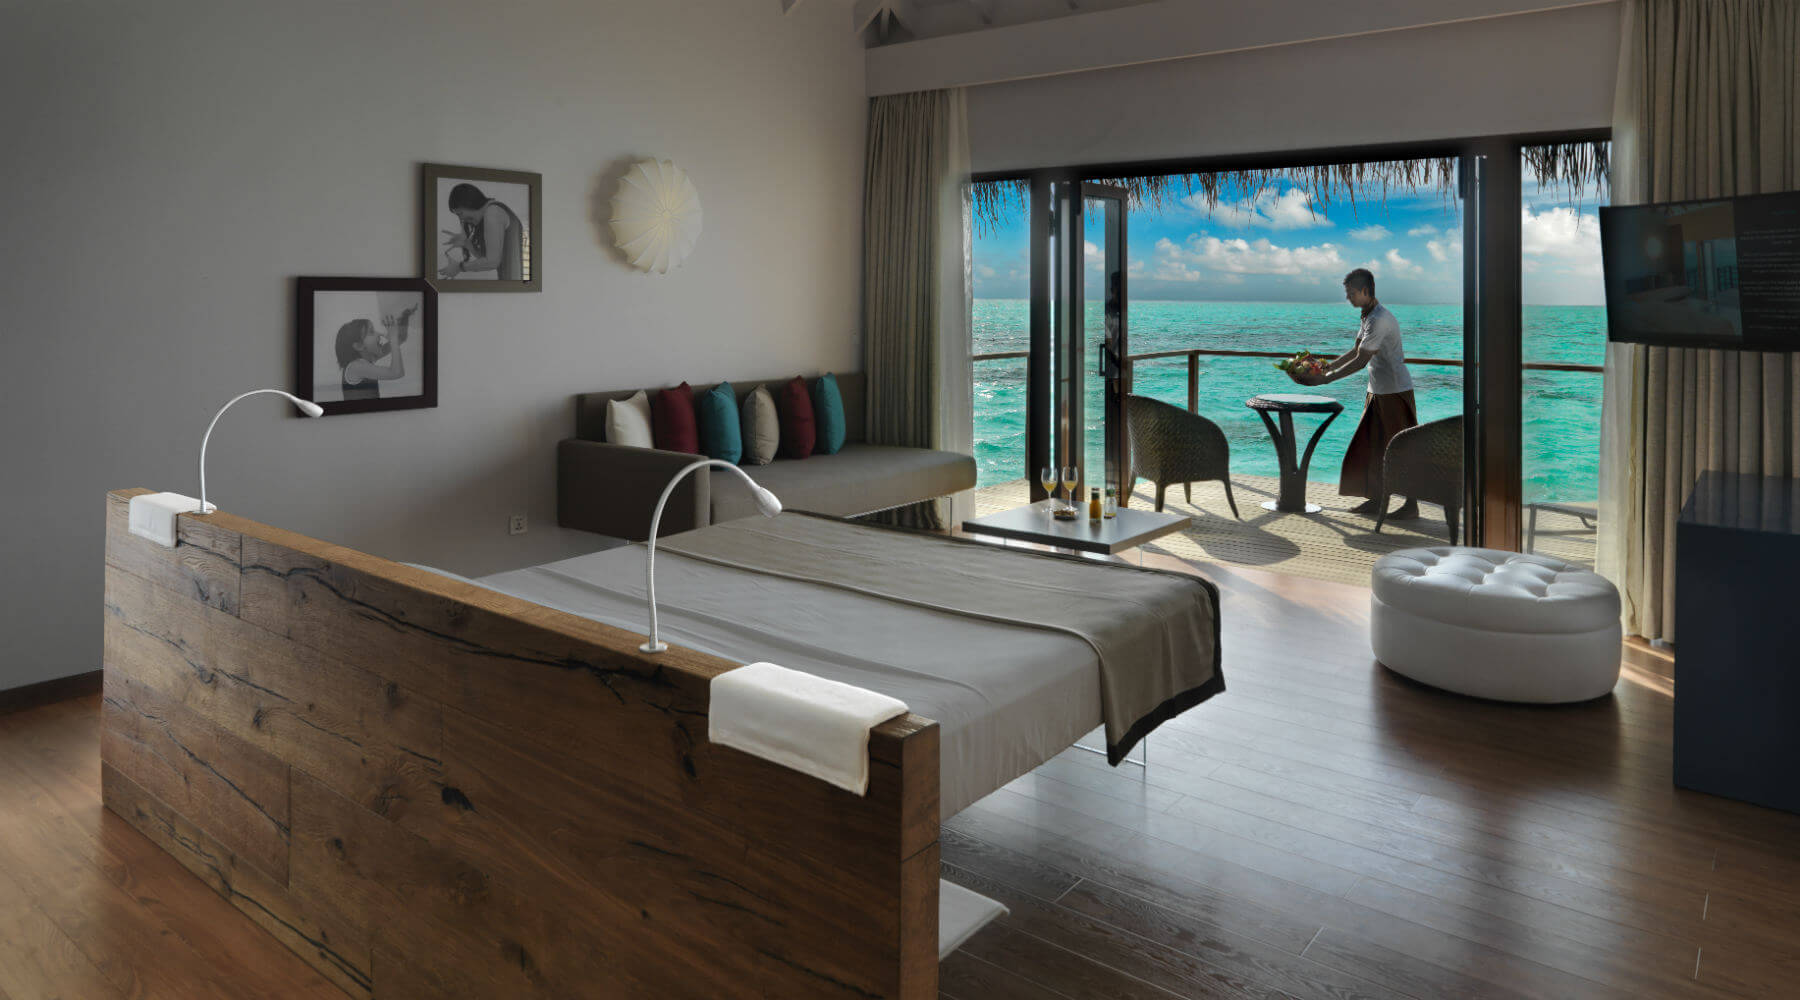 LAGO Cocoon Maldive - Letto Air Wildwood